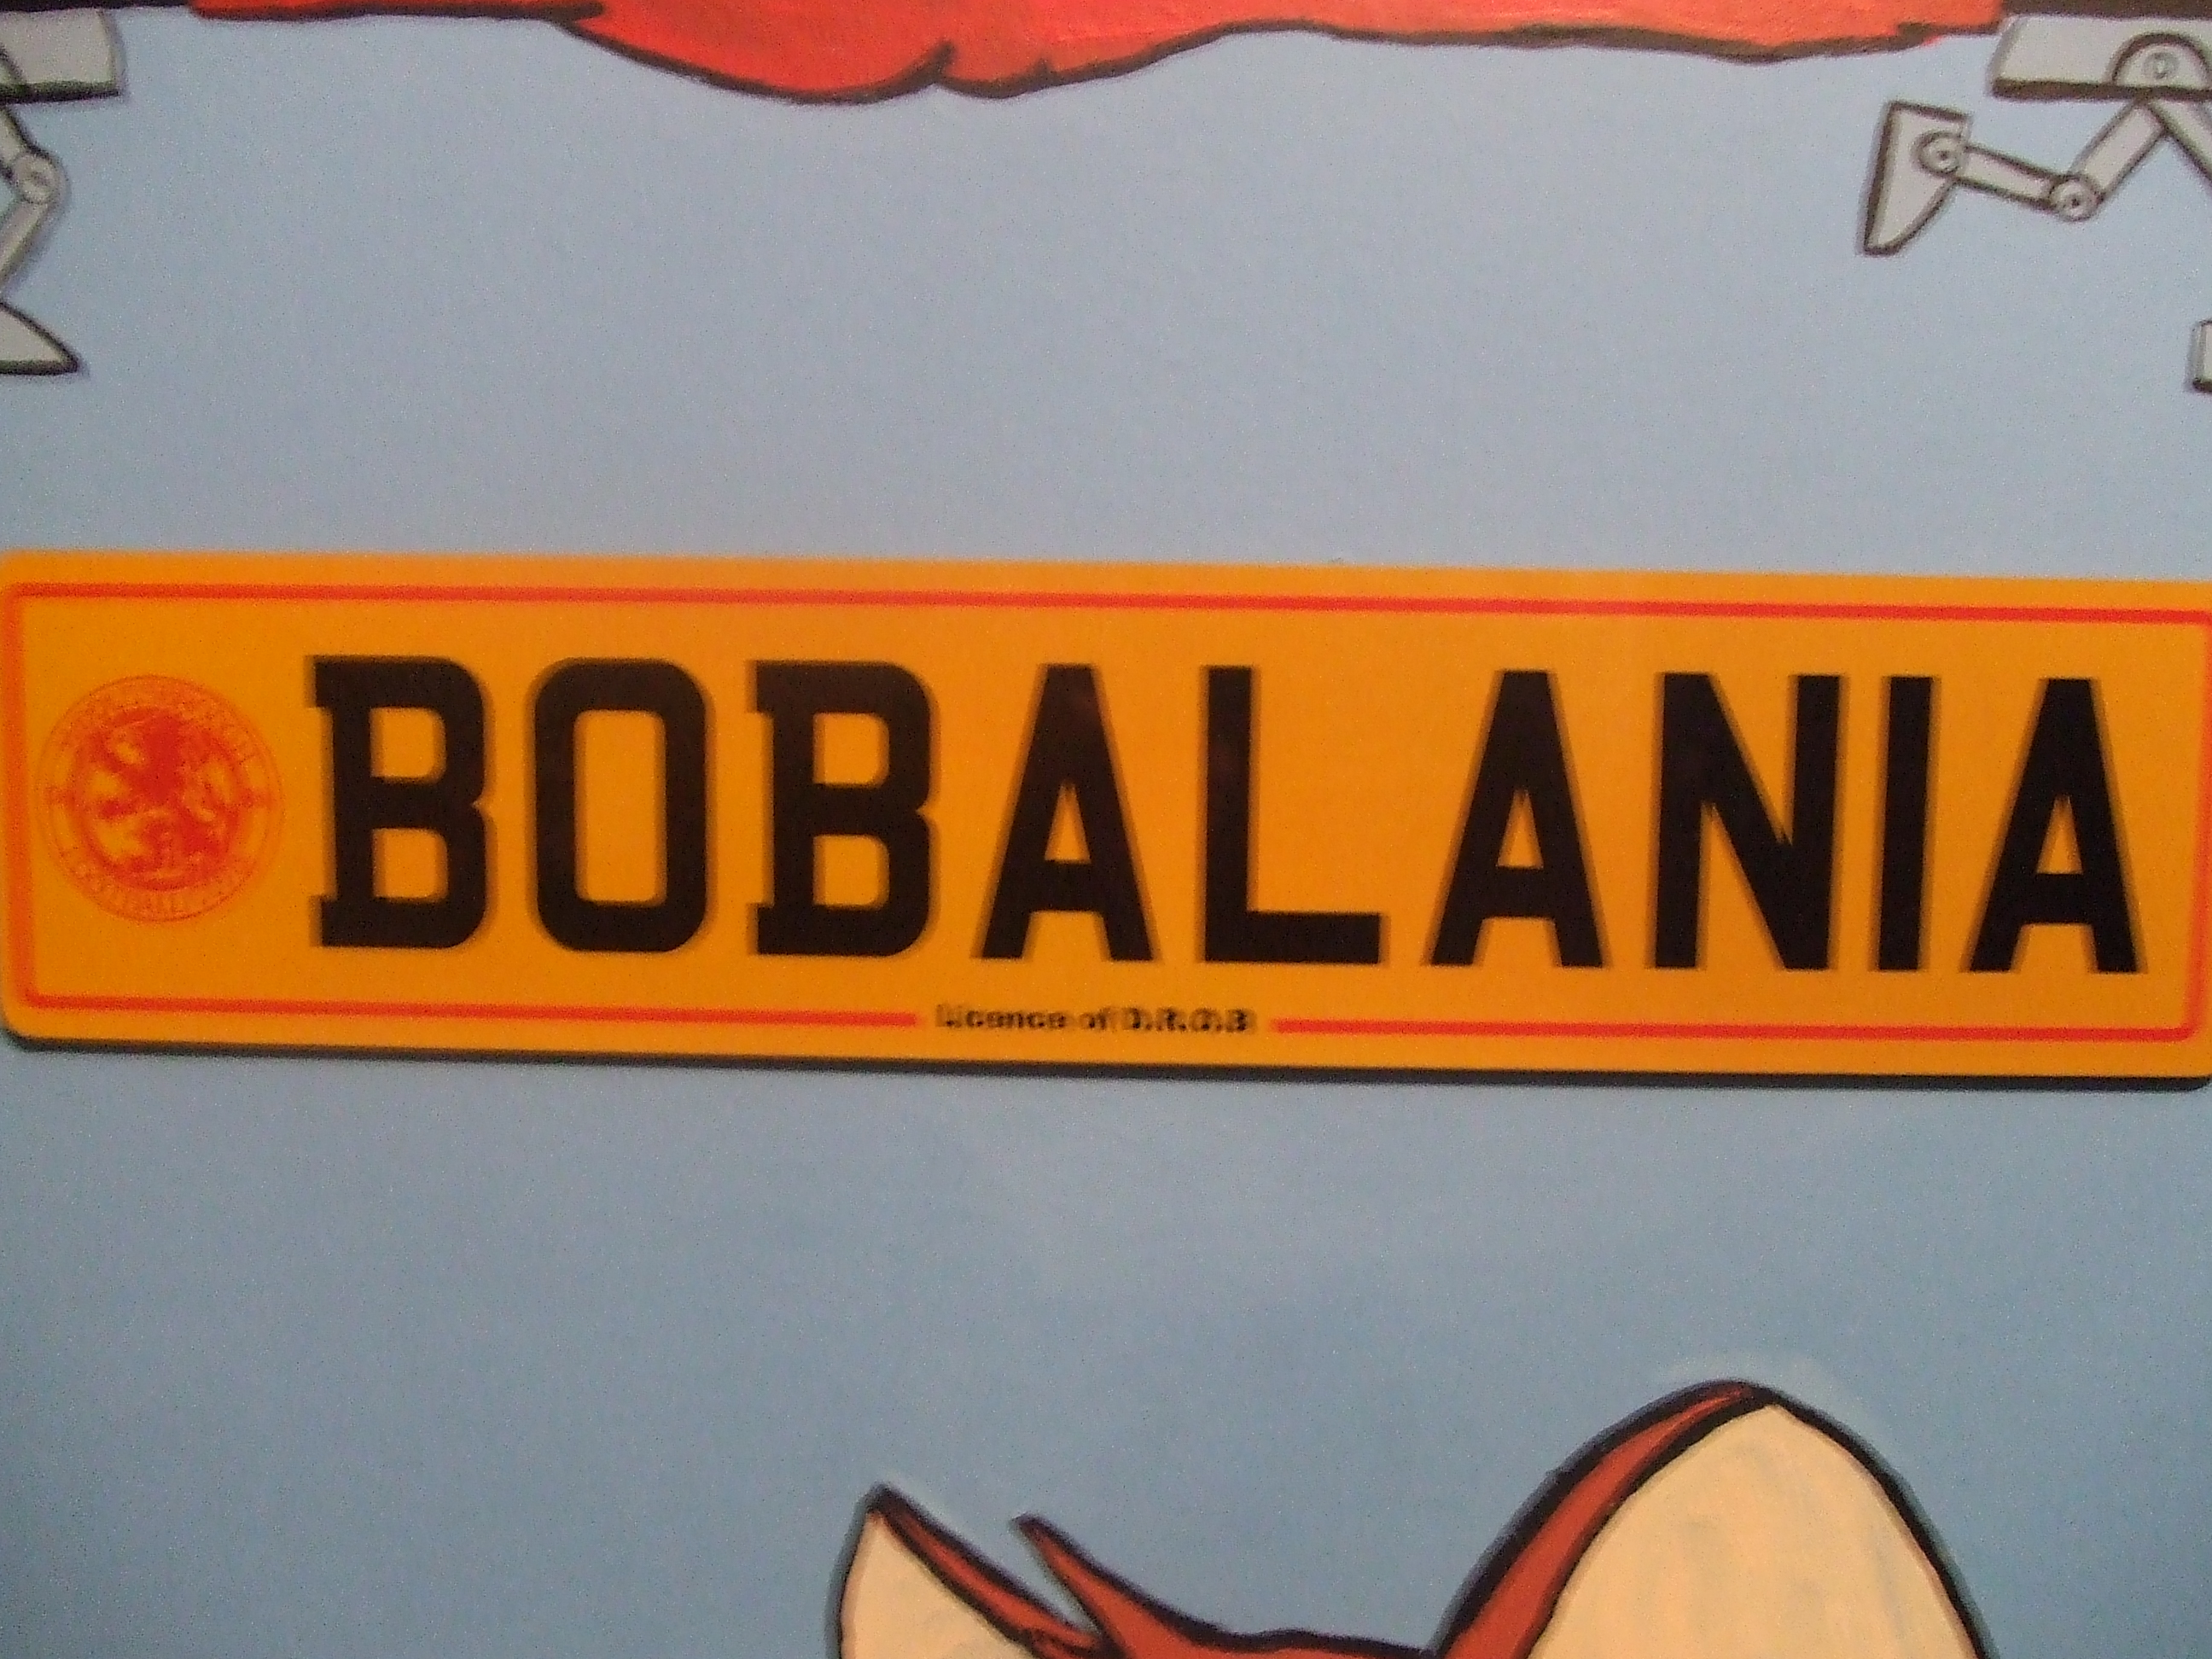 bobalanianumberplate.jpg